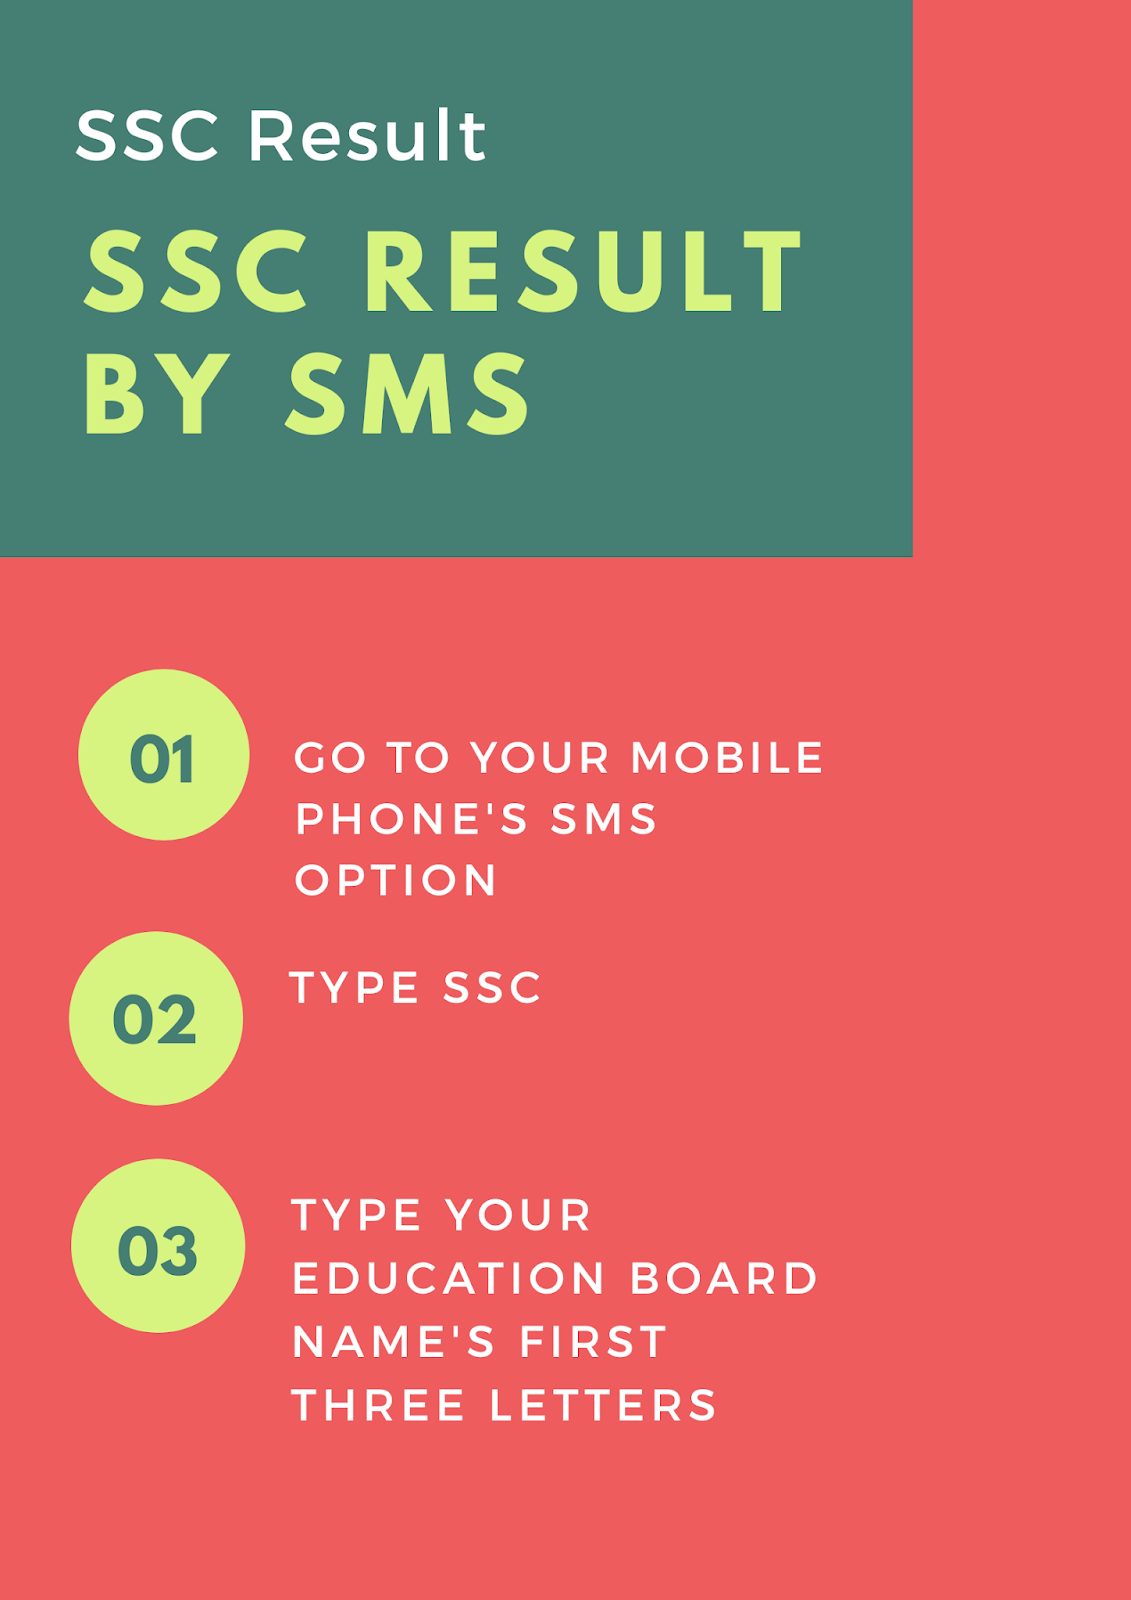 SSC Result 2019 infographic